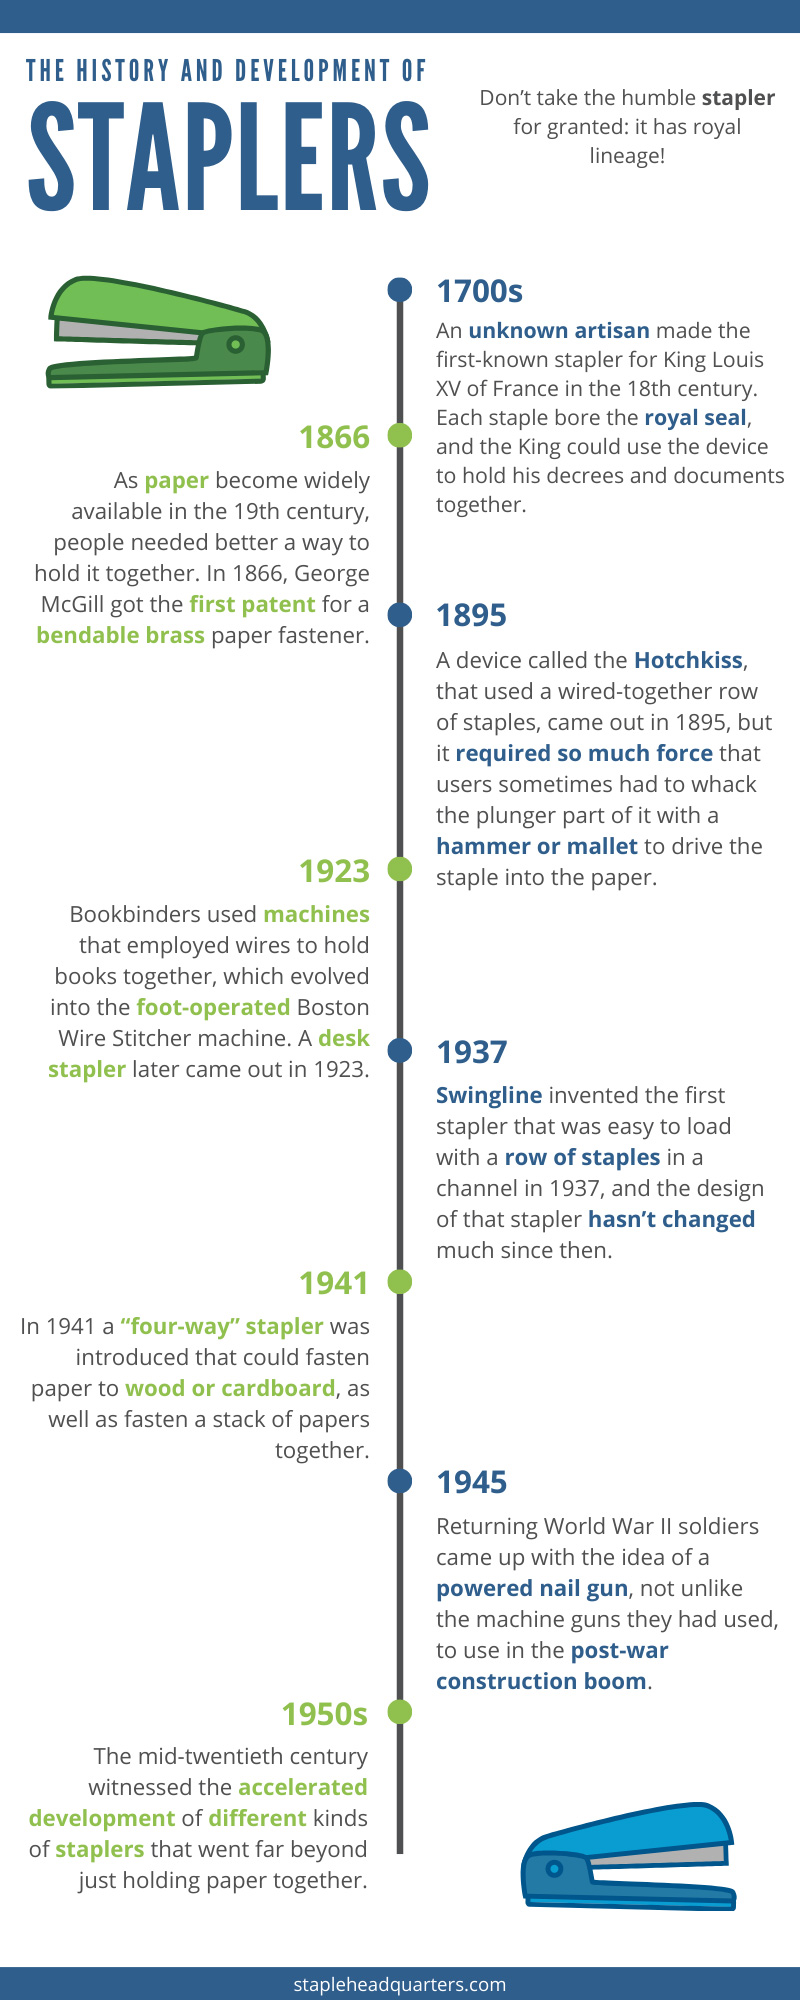 The History of Staplers